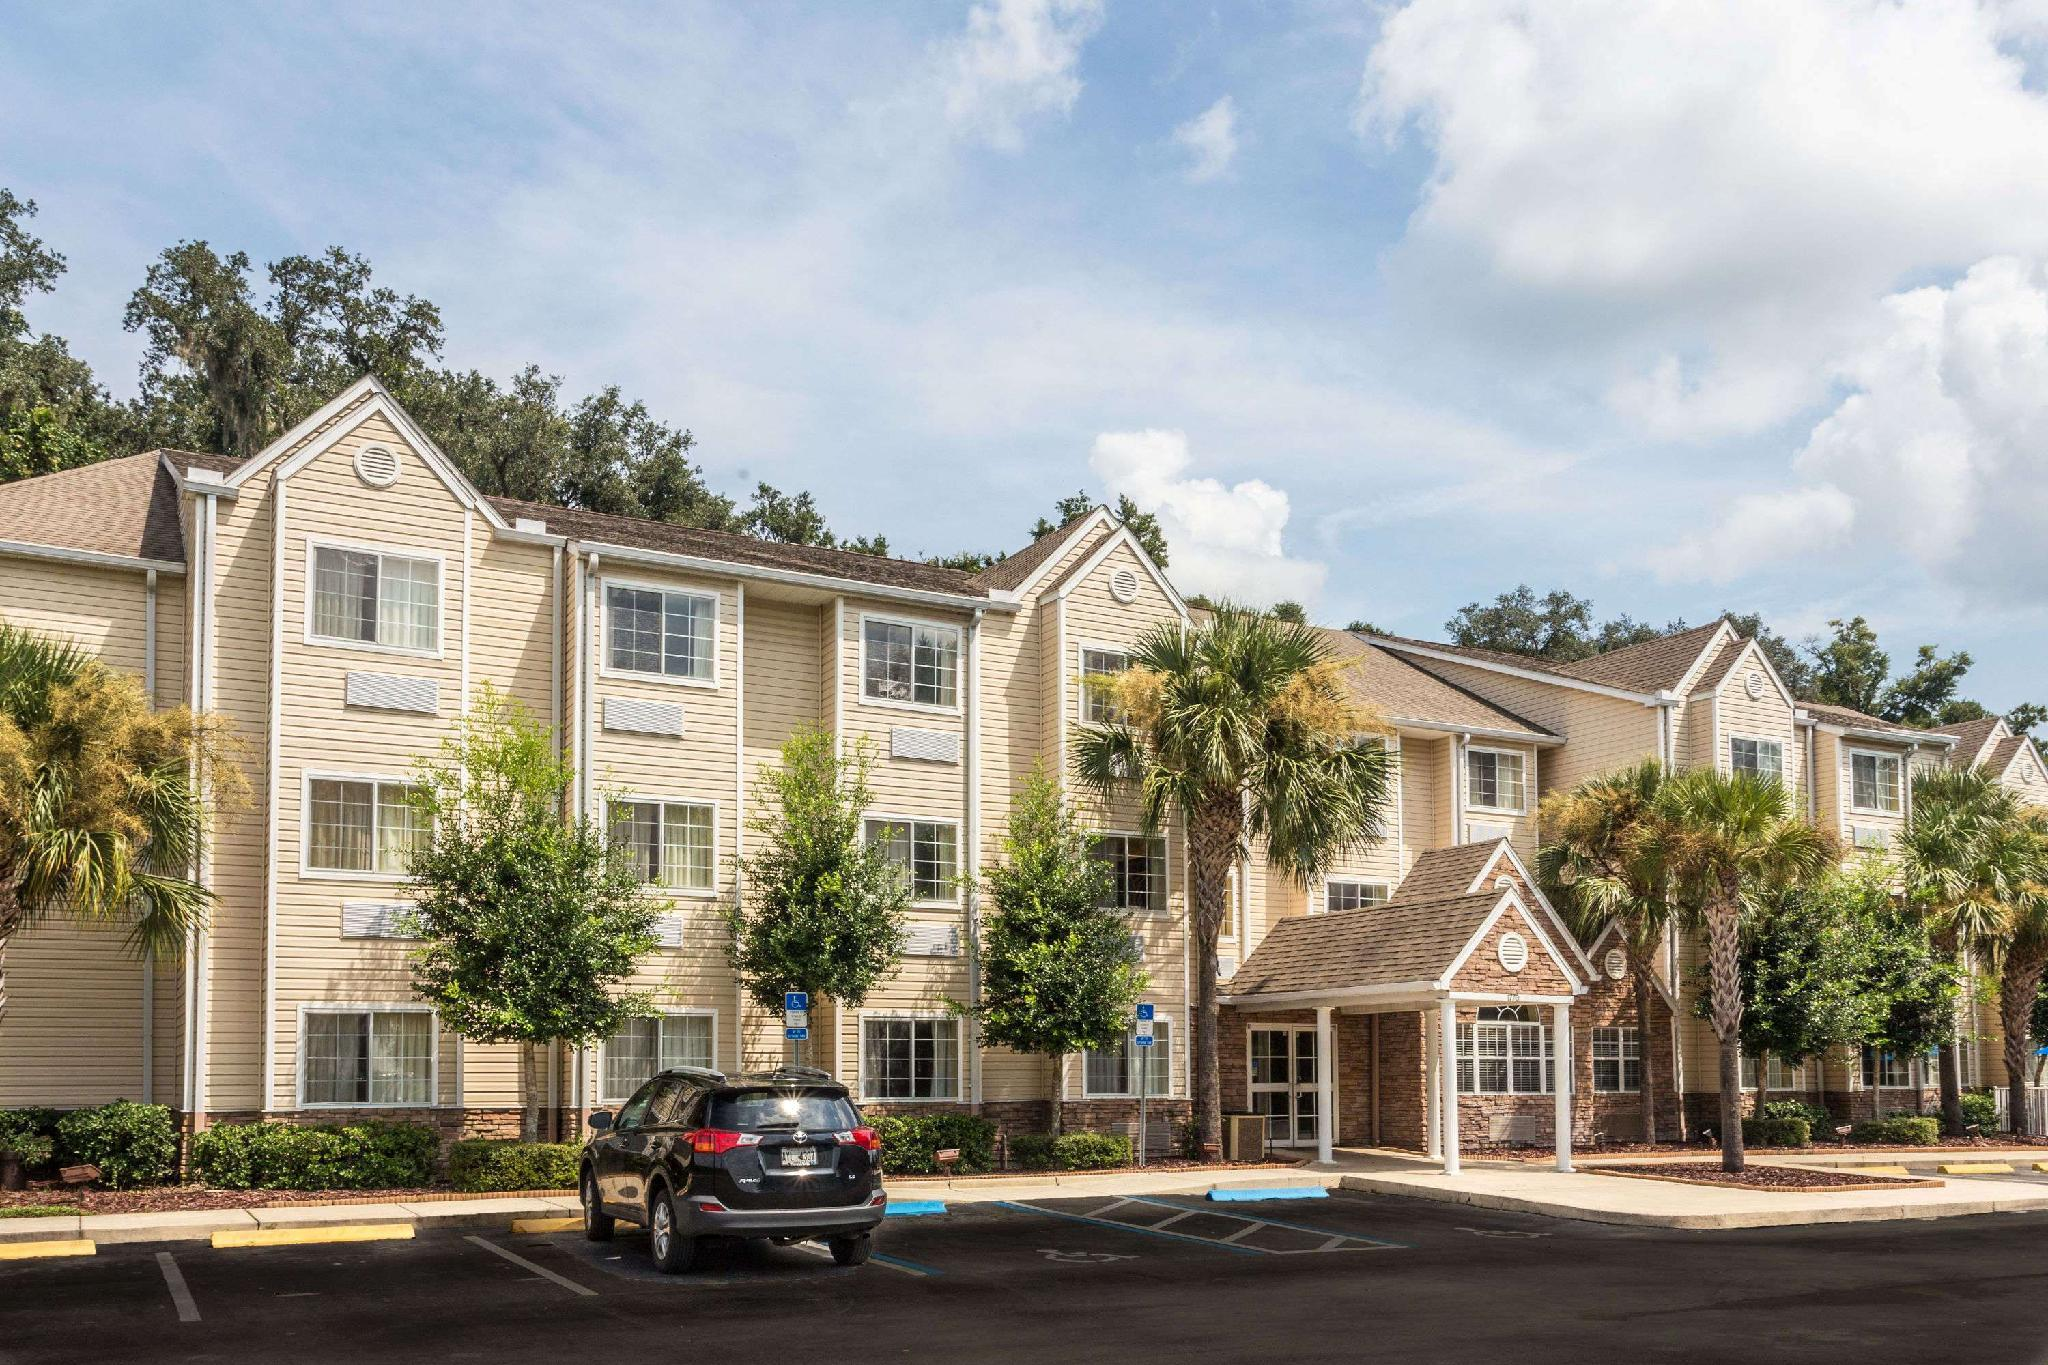 Microtel Inn And Suites By Wyndham Ocala